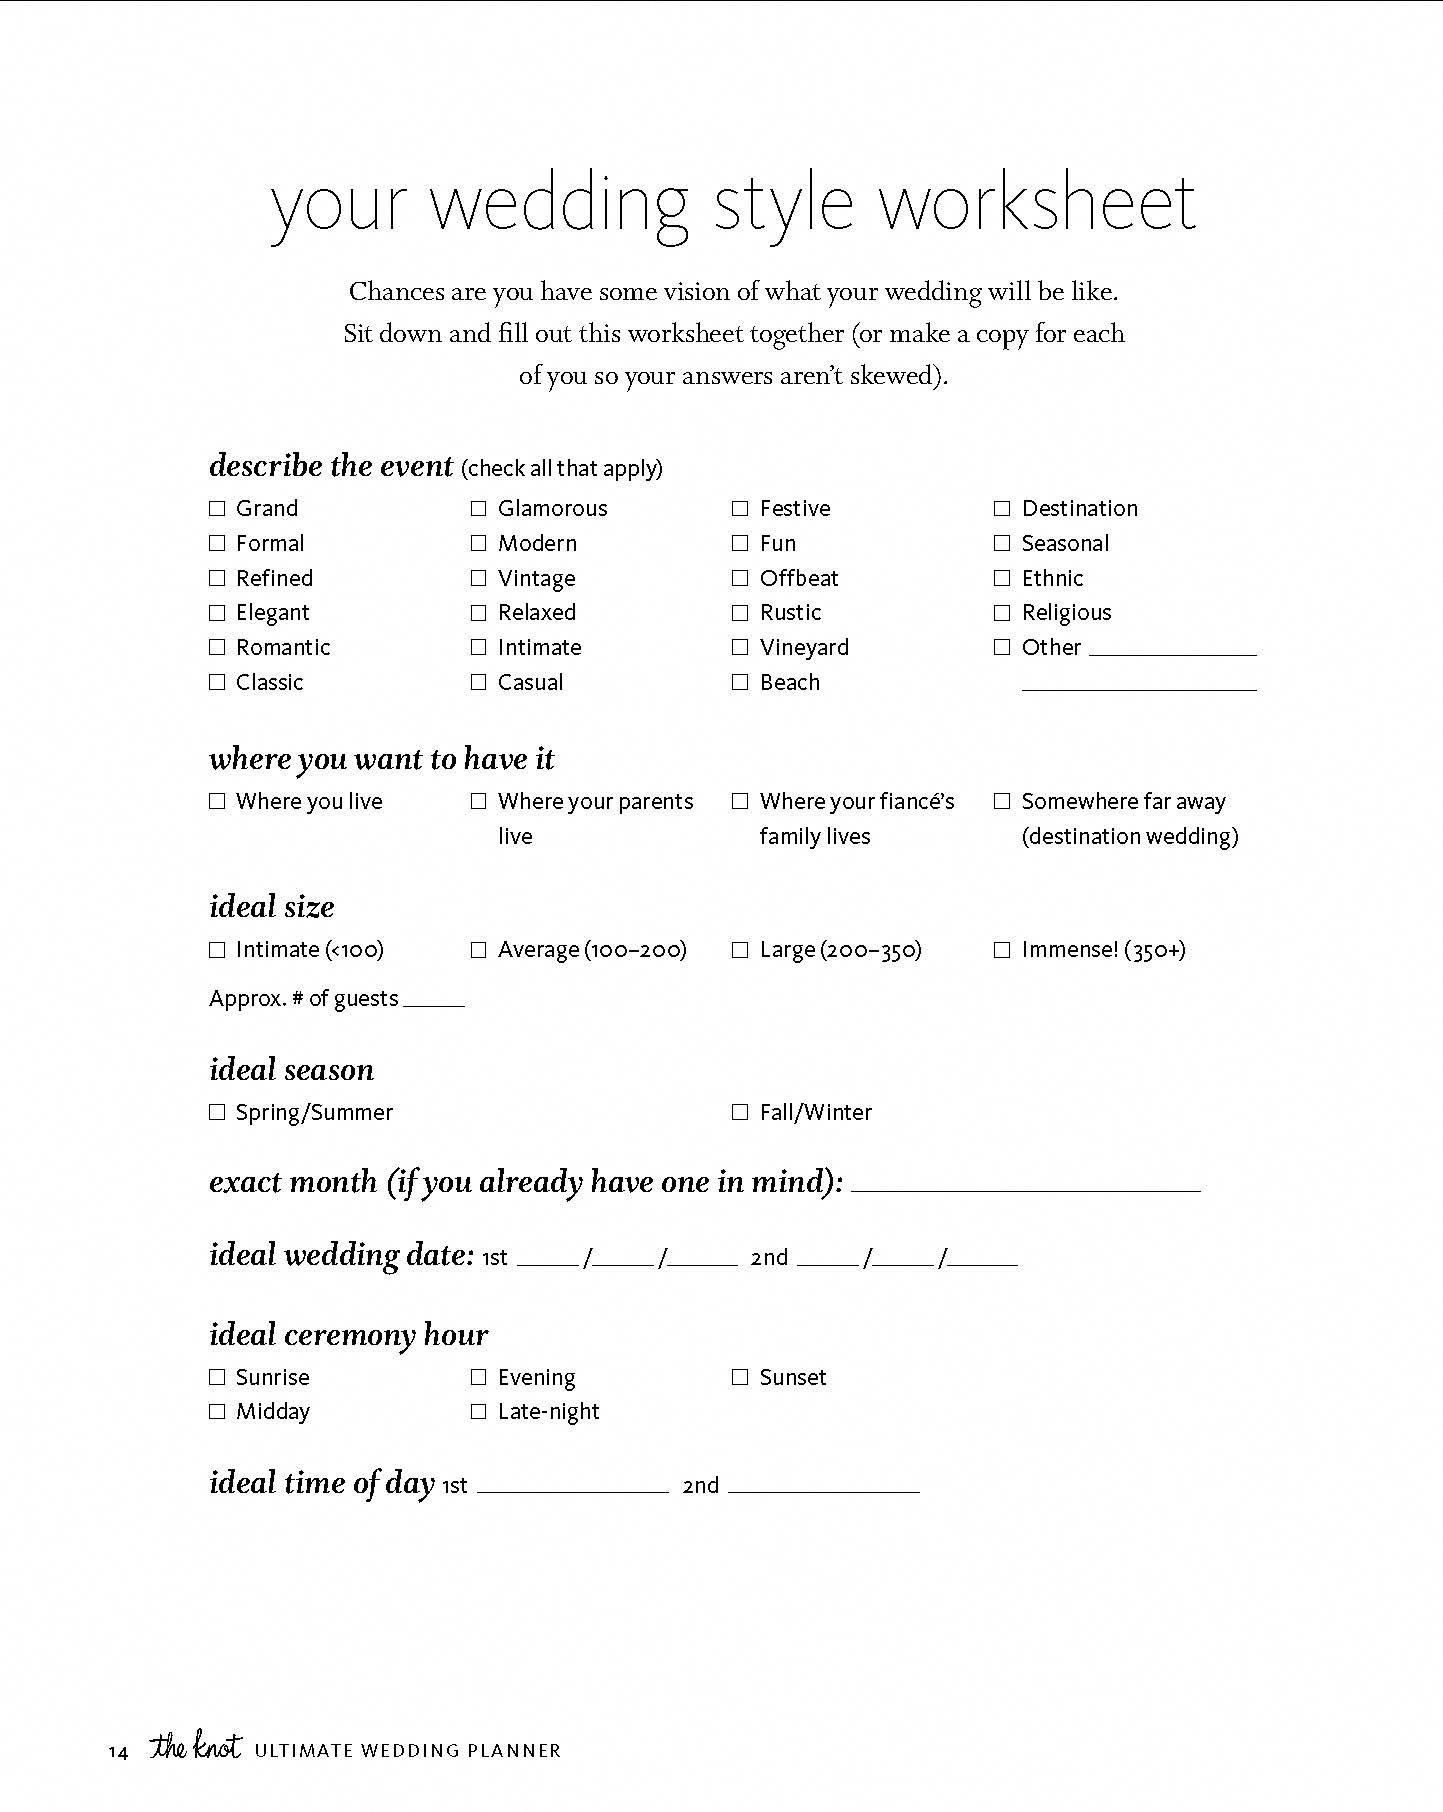 Reprinted From The Knot Ultimate Wedding Planner Amp Organizer Binder Edition Worksheets